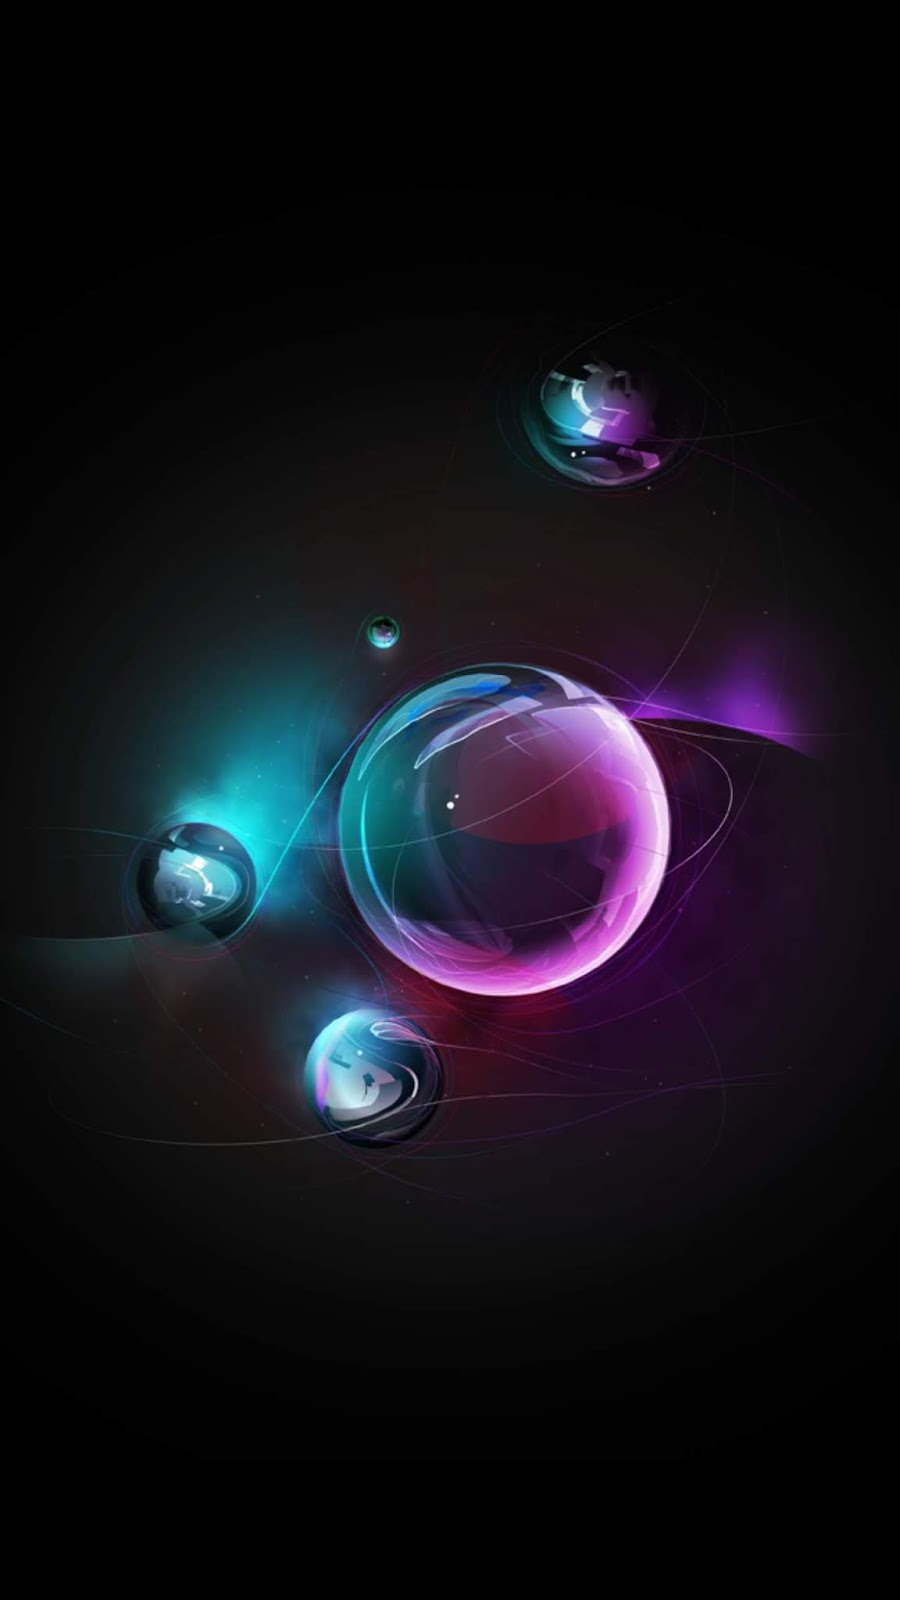 Bubble (Saving battry for Amoled display)